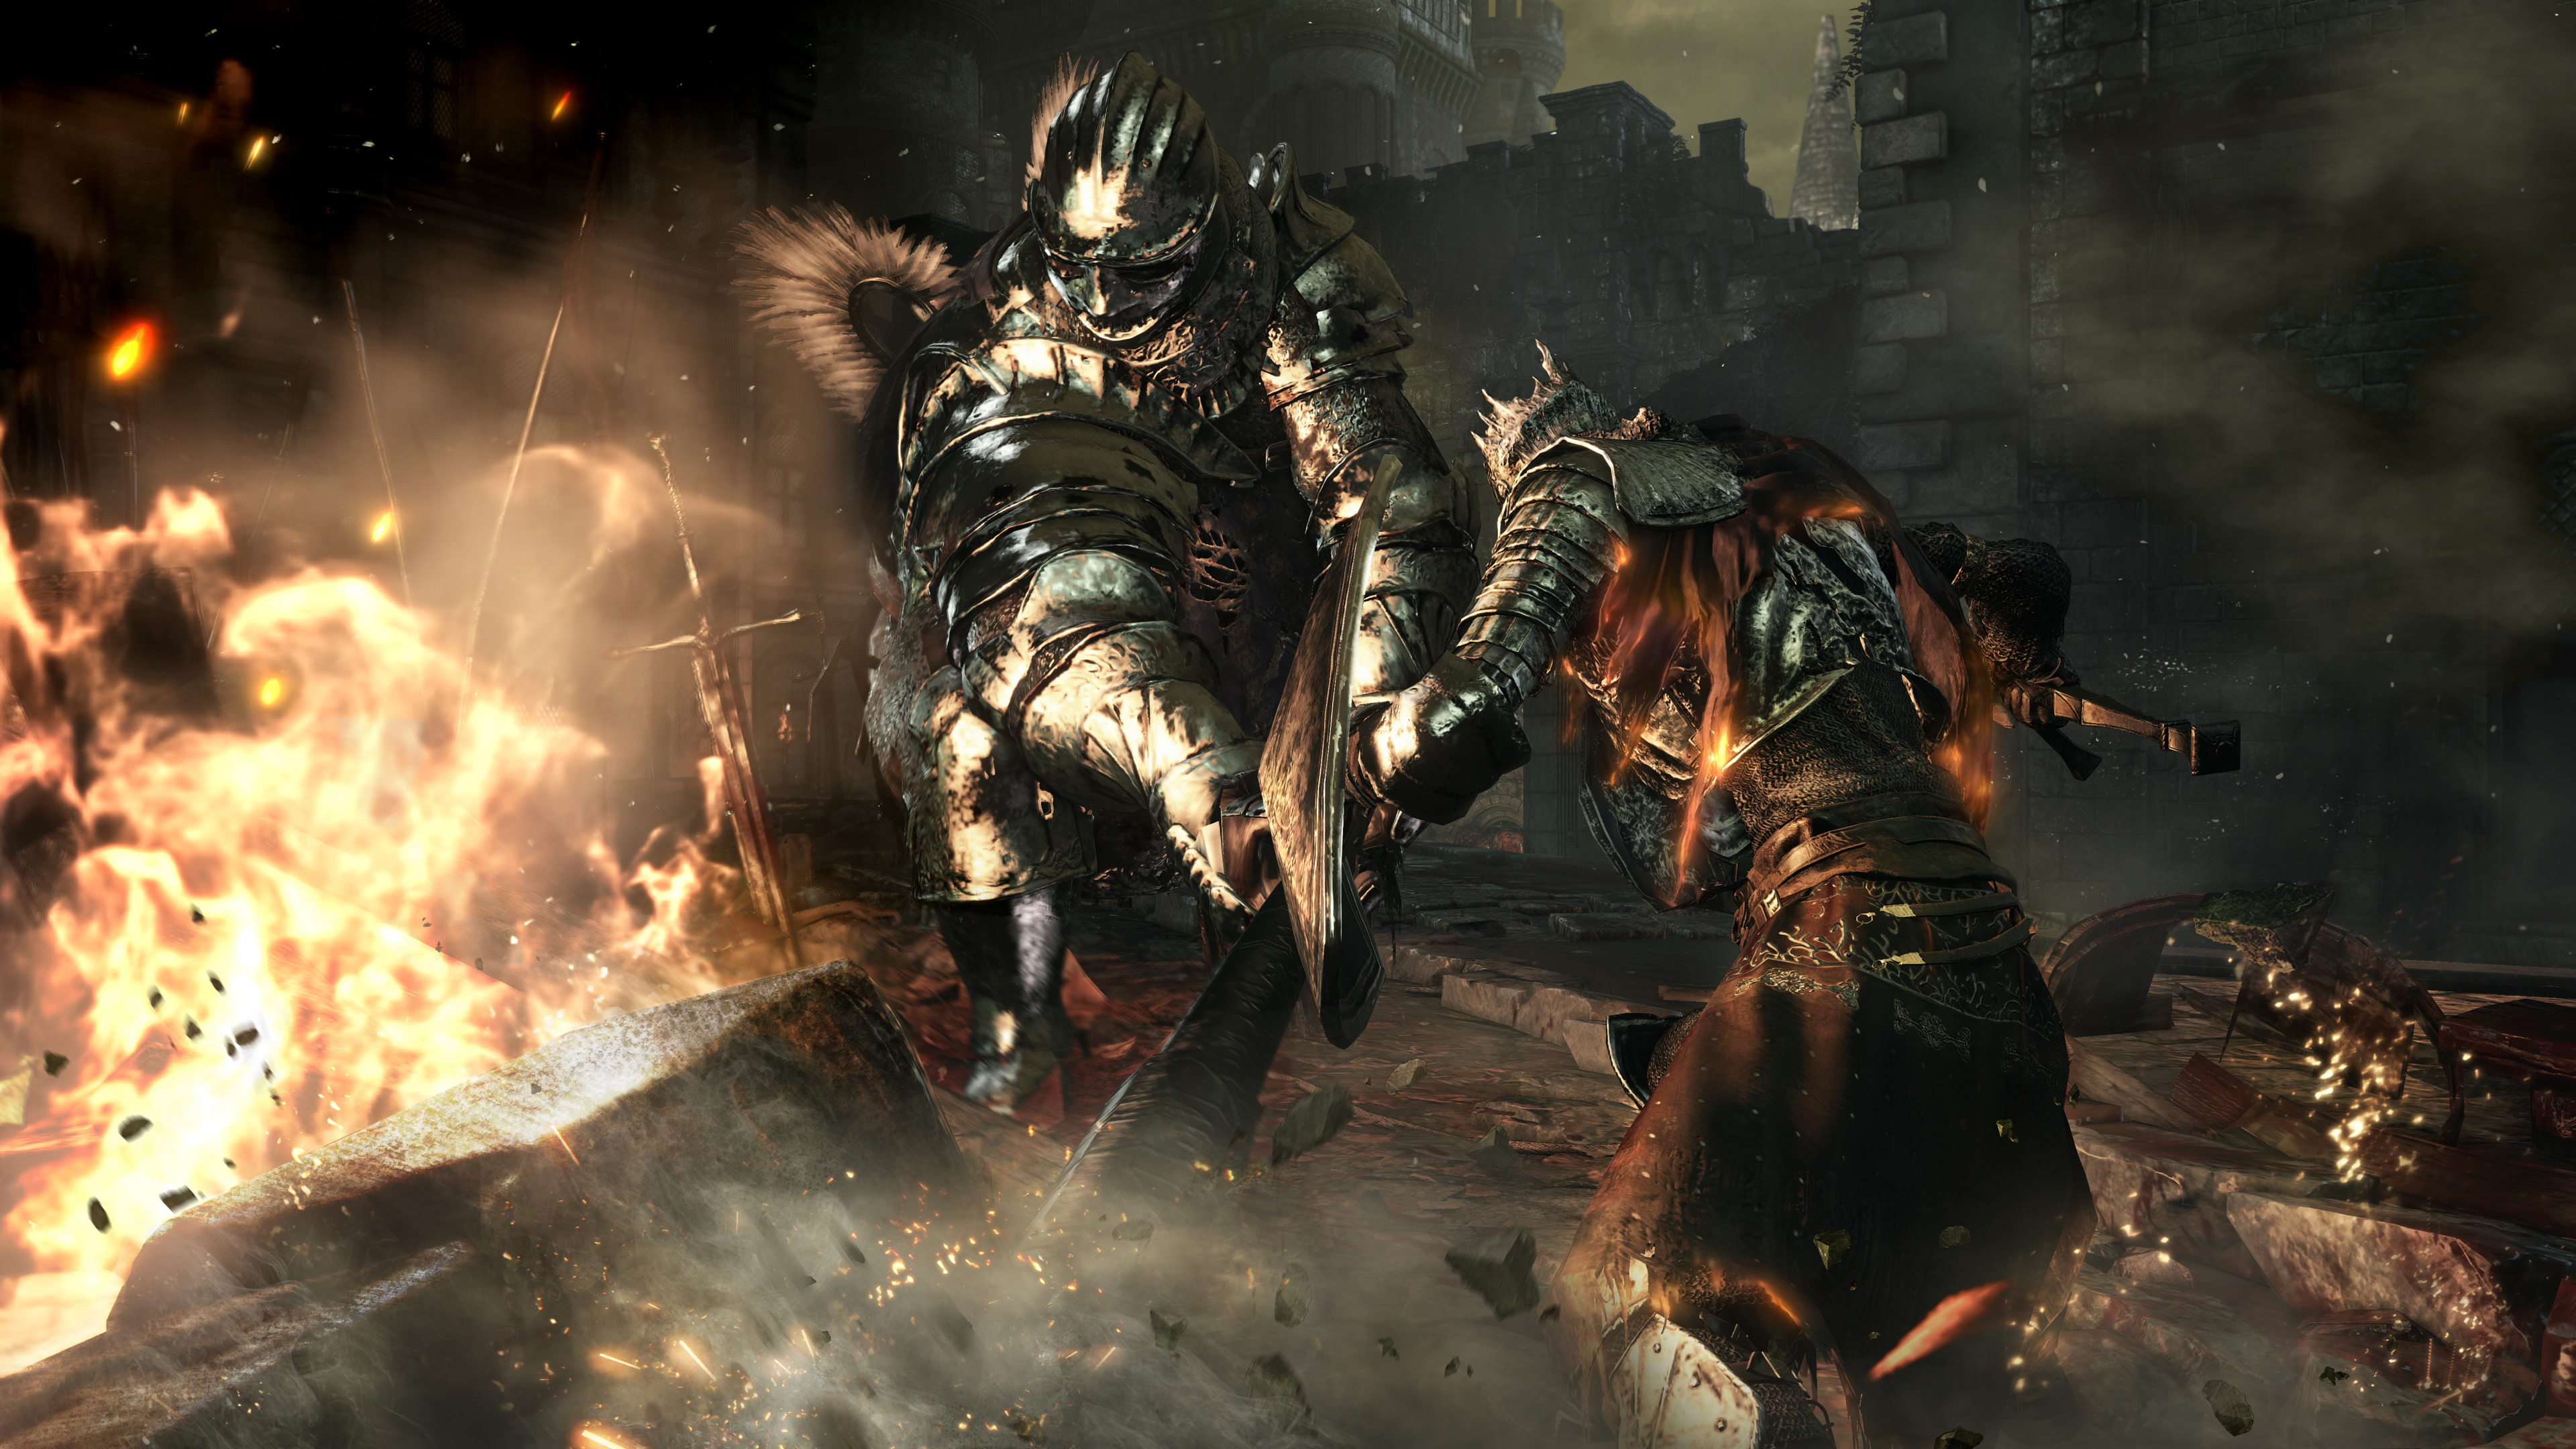 Dark Souls 3 full Game Cracked Download PC